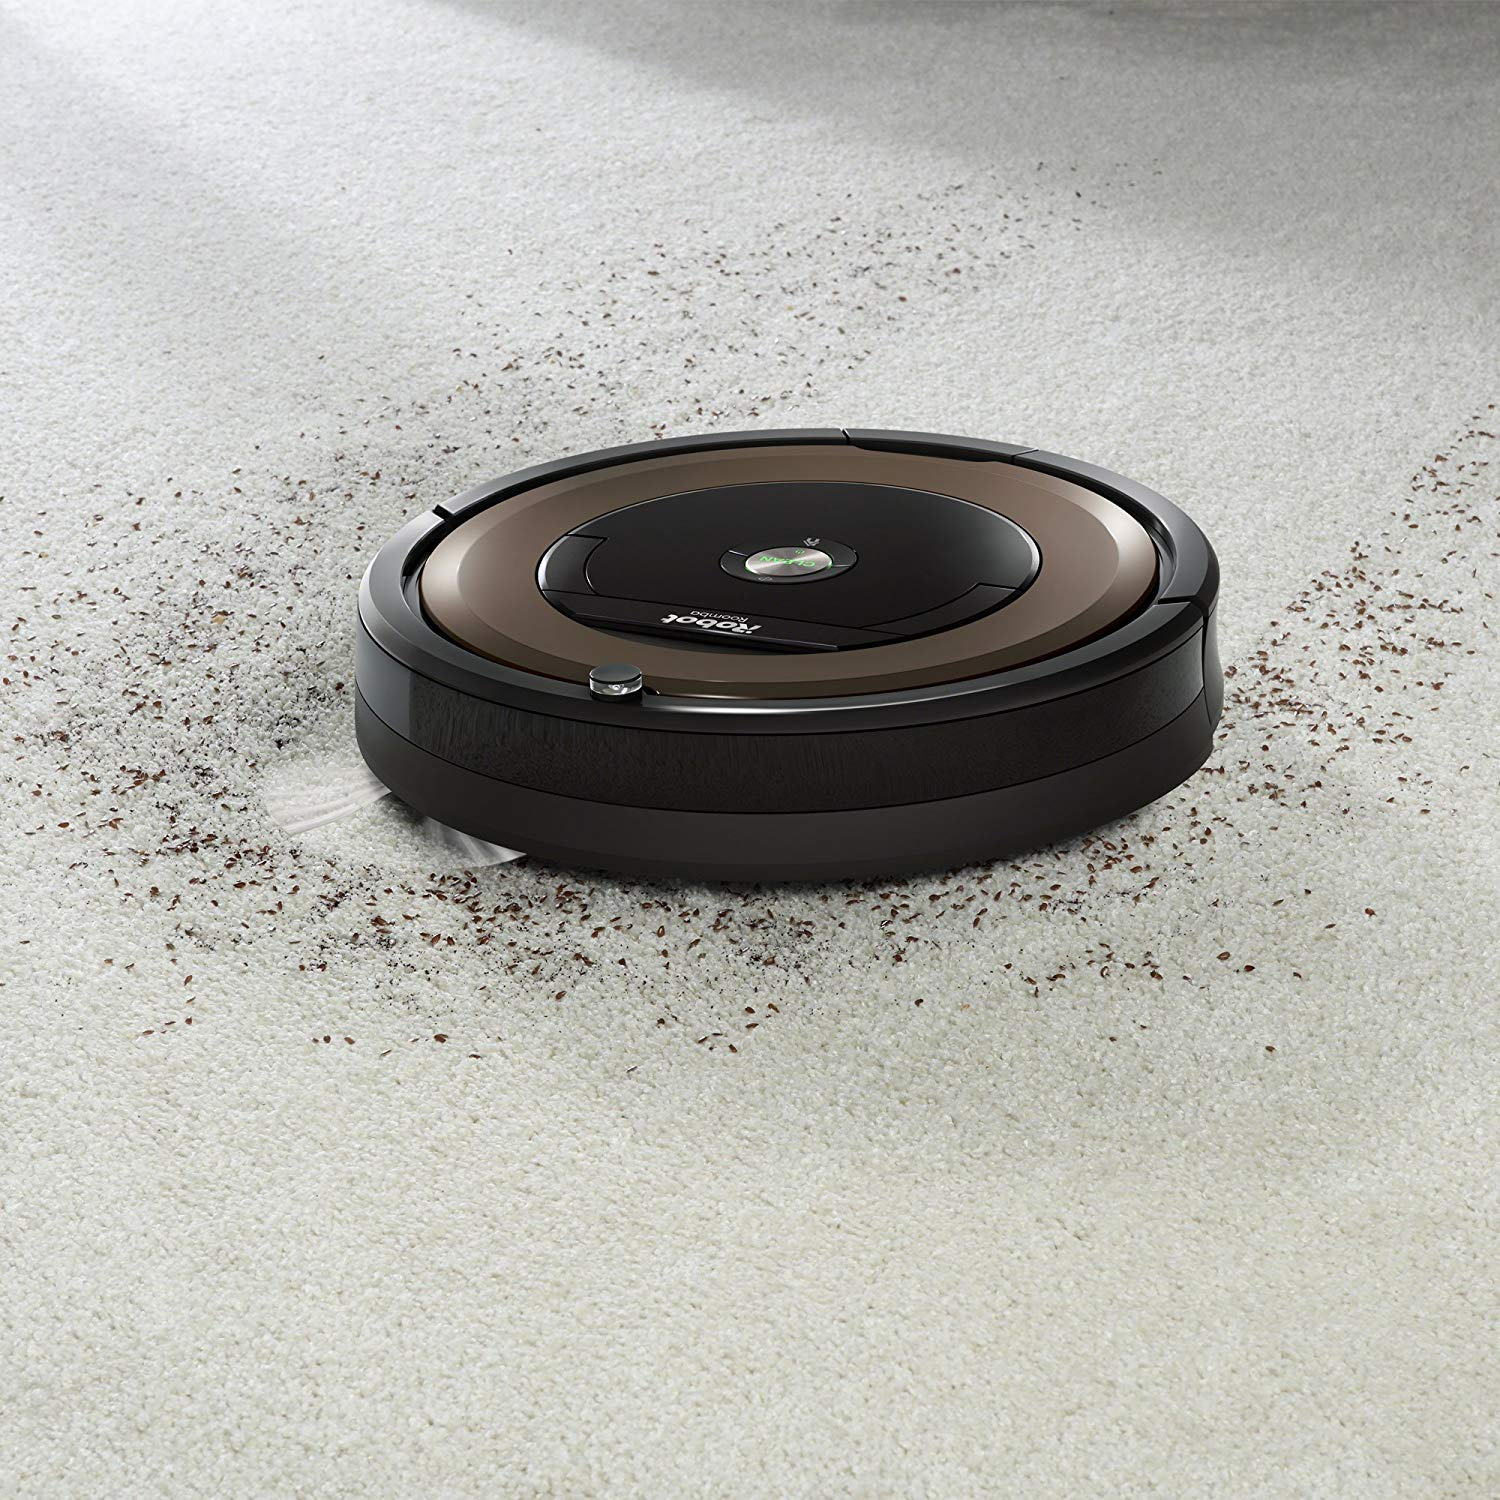 iRobot Roomba 890 Cleaning